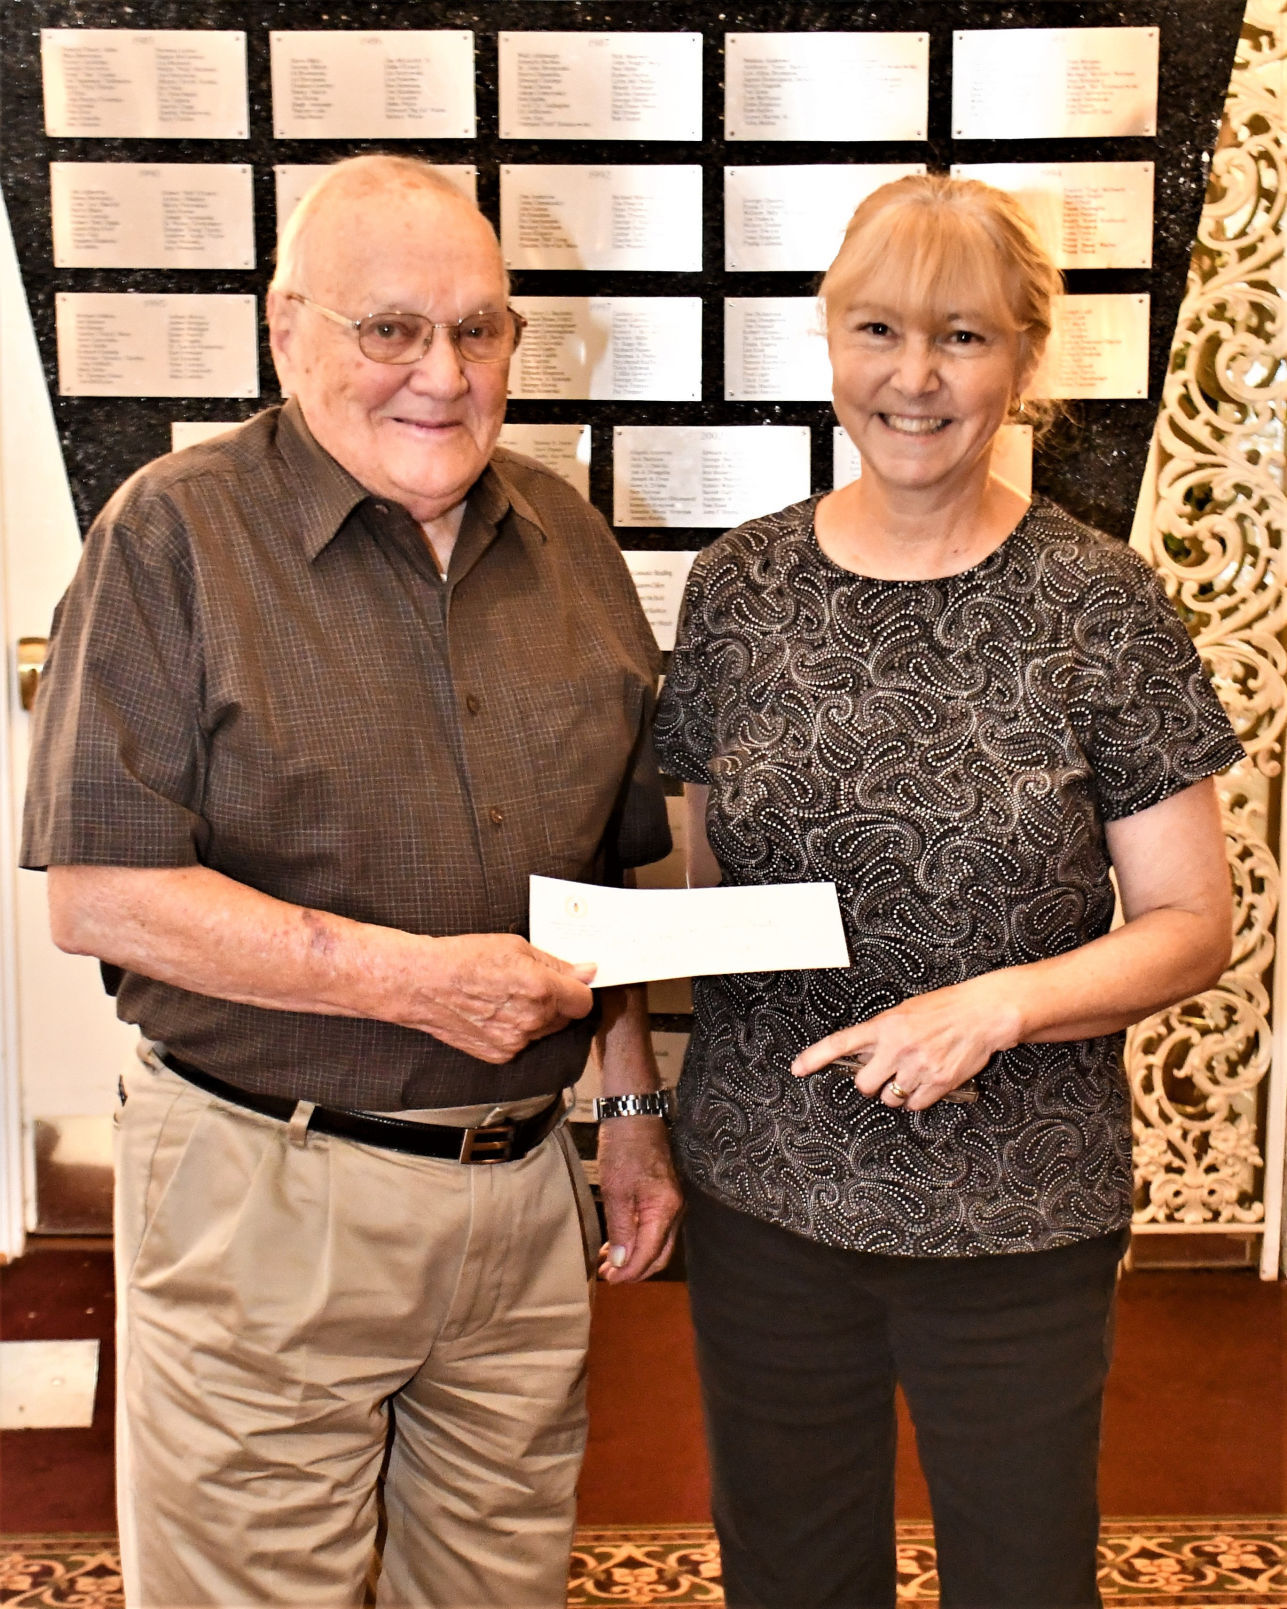 Luzerne County Sports Hall of Fame funds community organizations